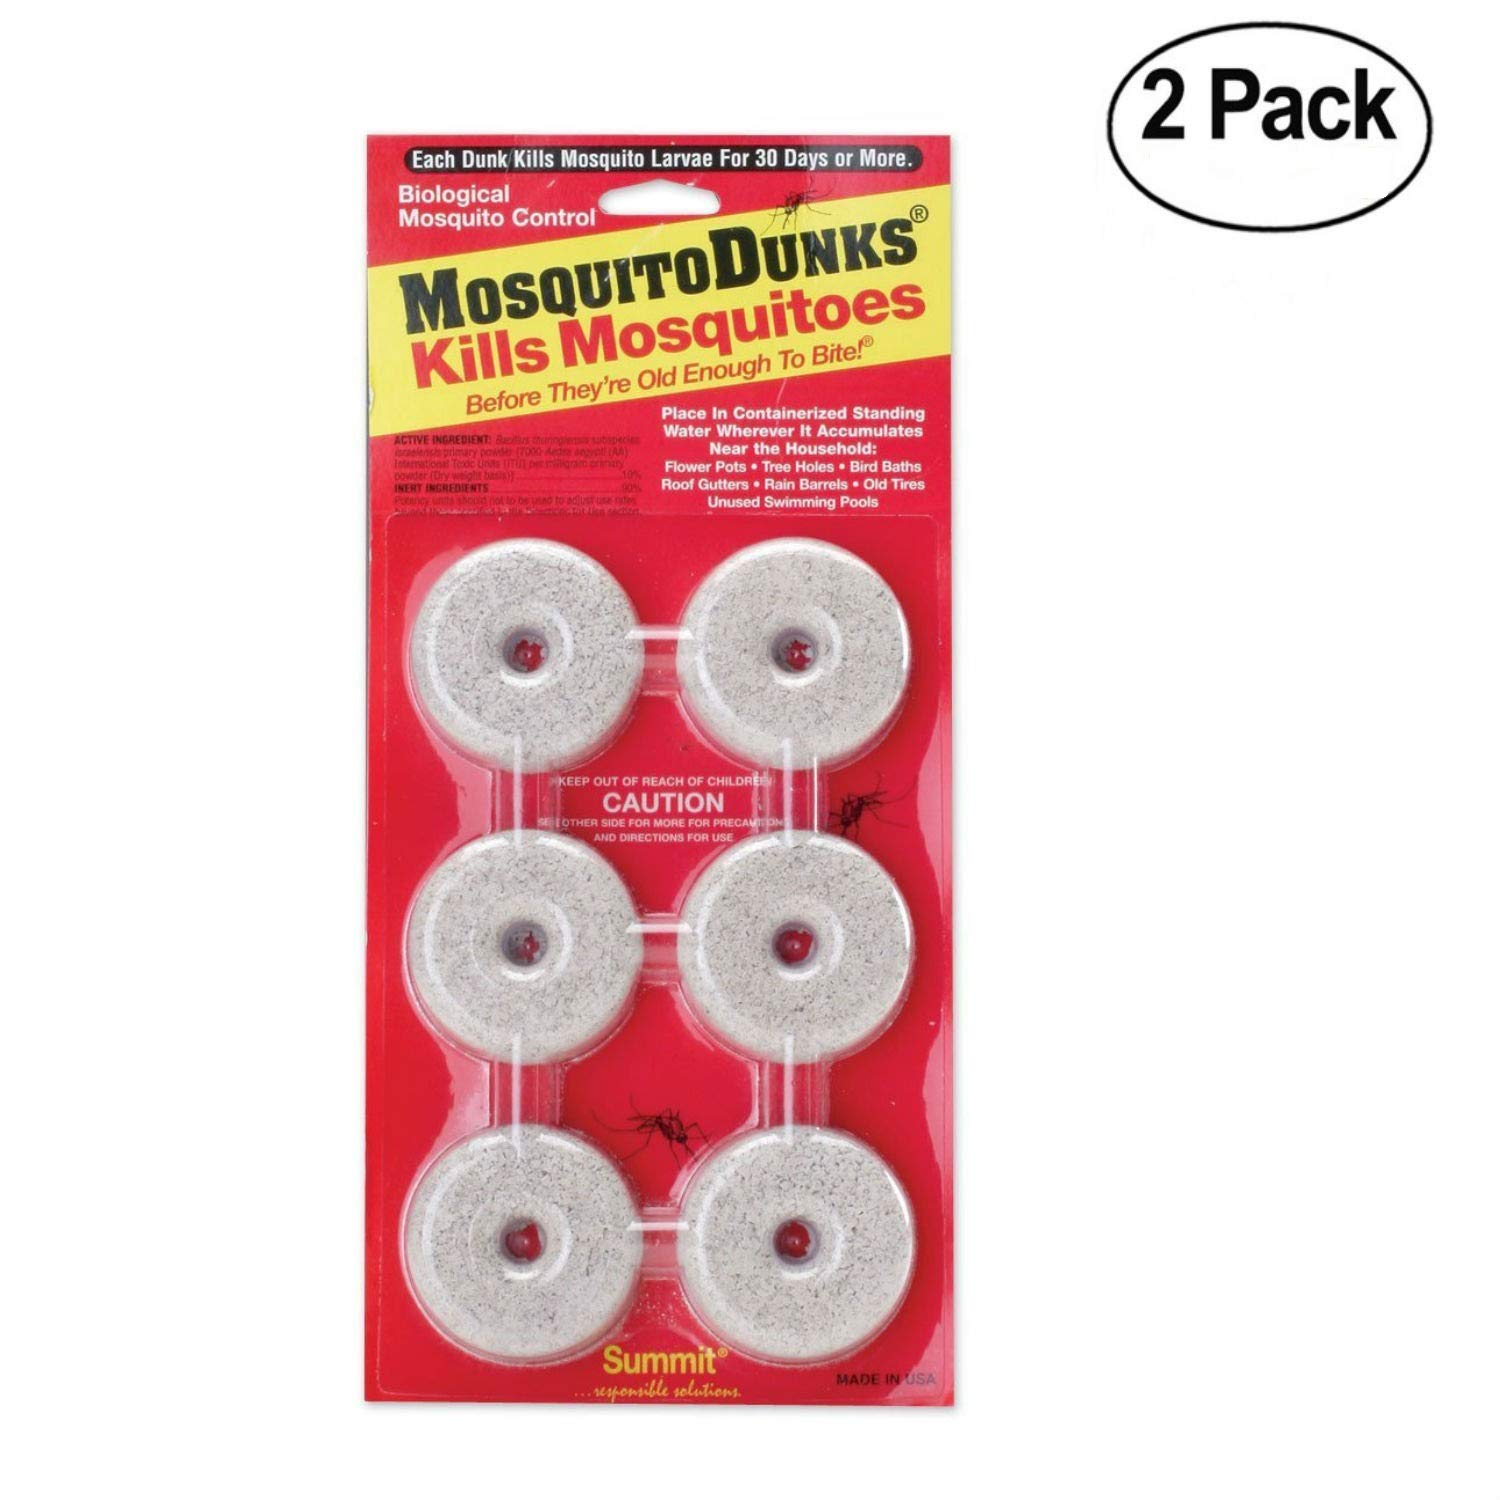 Summit...responsible solutions 110-12 Mosquito Dunks, 6 Piece - 2 Pack by Summit...responsible solutions